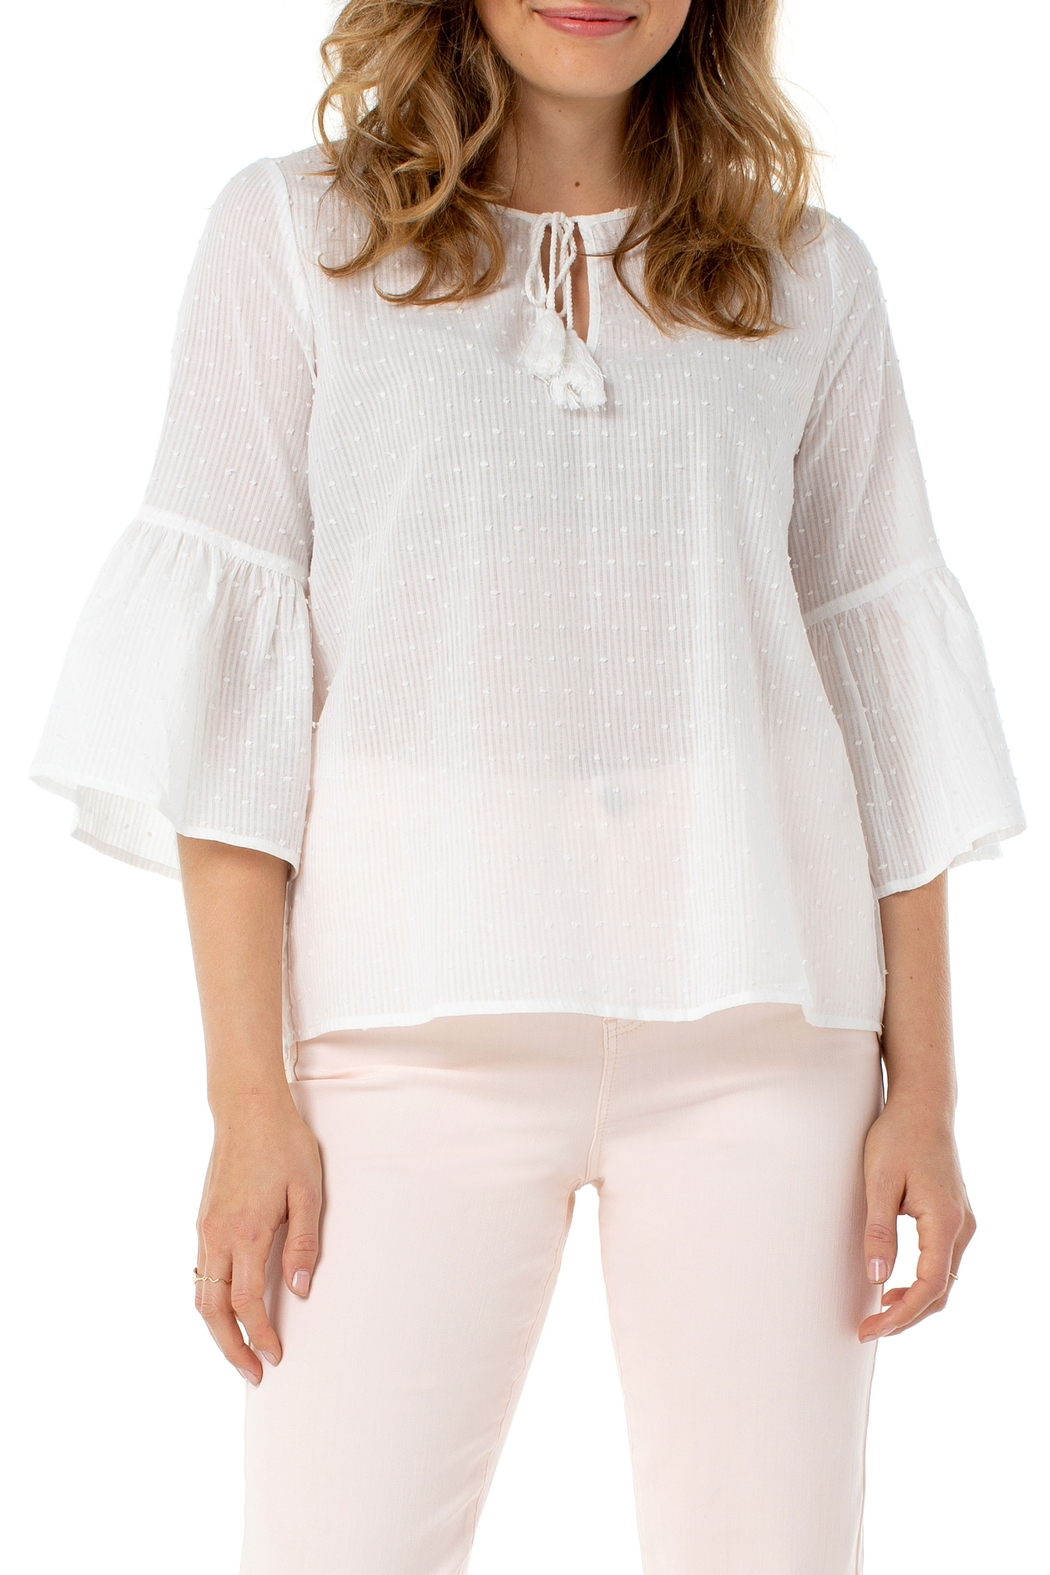 Liverpool  Bell Sleeve Popover White Swiss Dot Top - Main Image